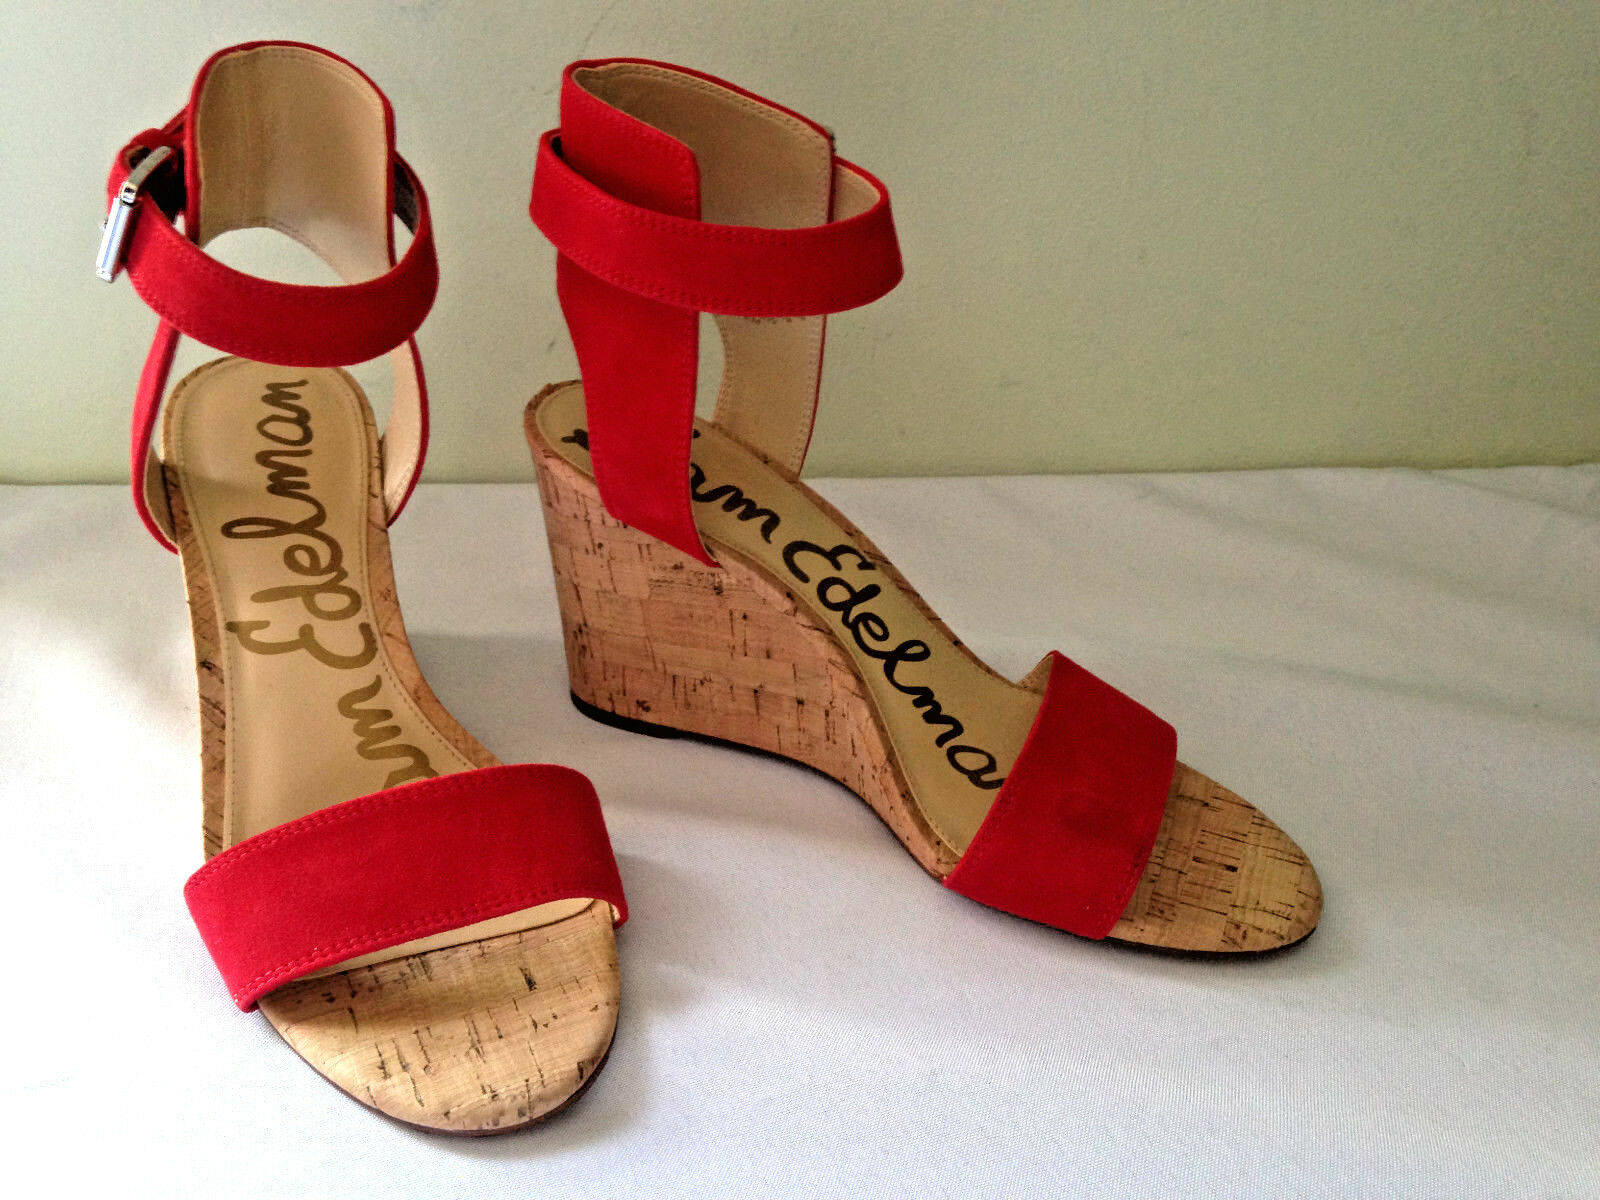 l'ultimo NEW Sam Edelman rosso Suede Leather WILLOW Wedge Open Open Open Toe Sandals 8.5 M  140  per il commercio all'ingrosso